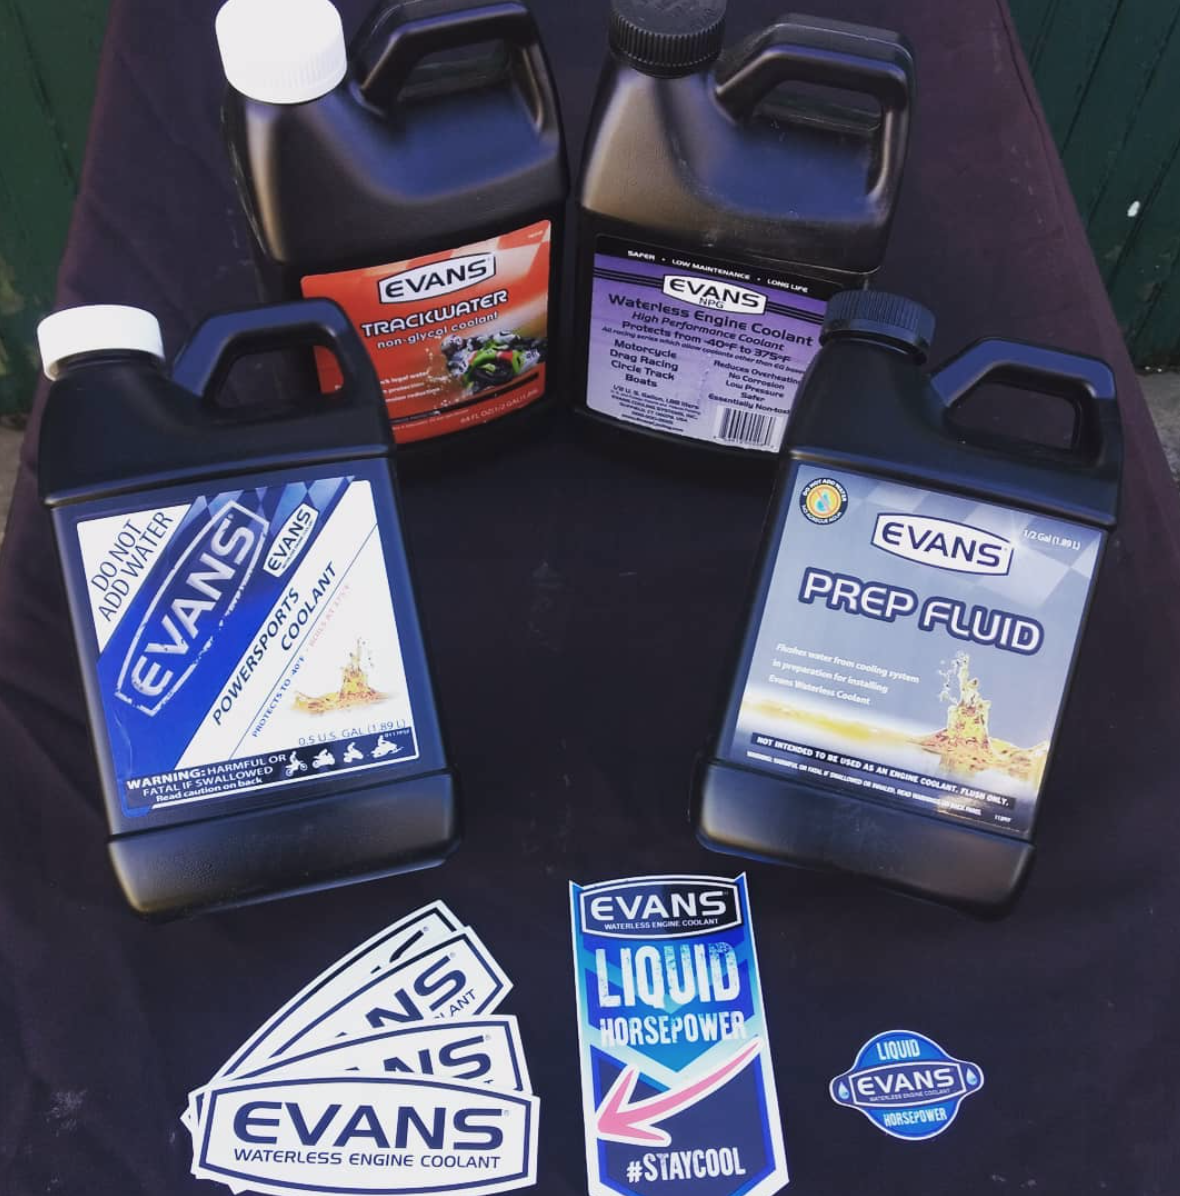 The Evans Powersport Coolant company makes a number of incredible products. They'll have whatever you need to keep your water-cooled ride going strong!